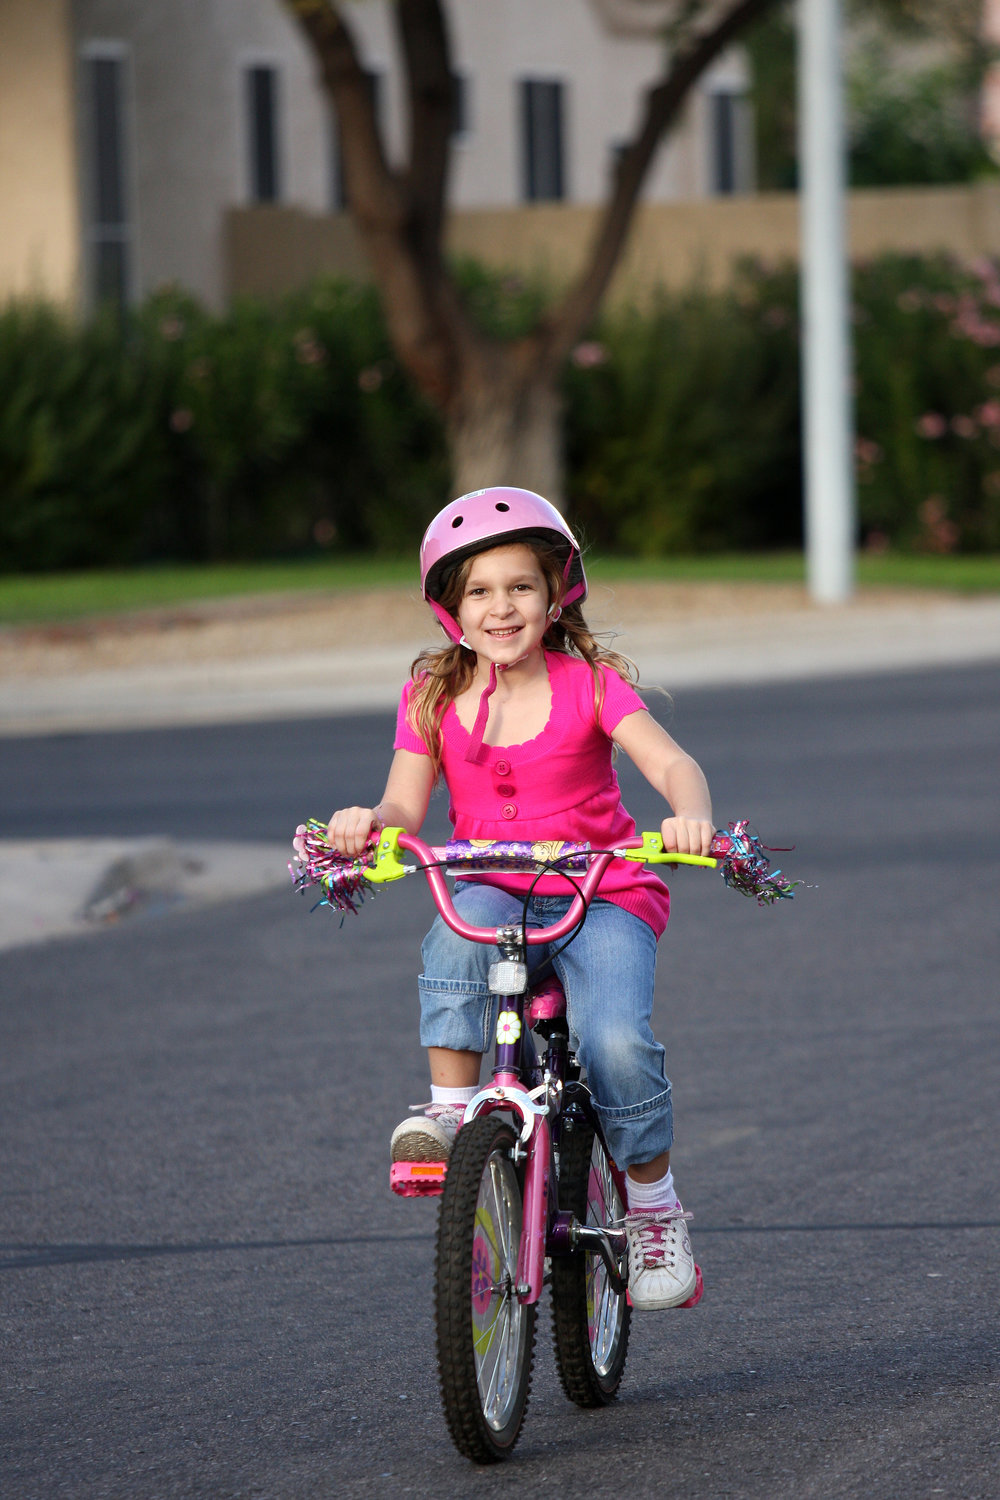 bigstock-Bike-Riding-5228038.jpg